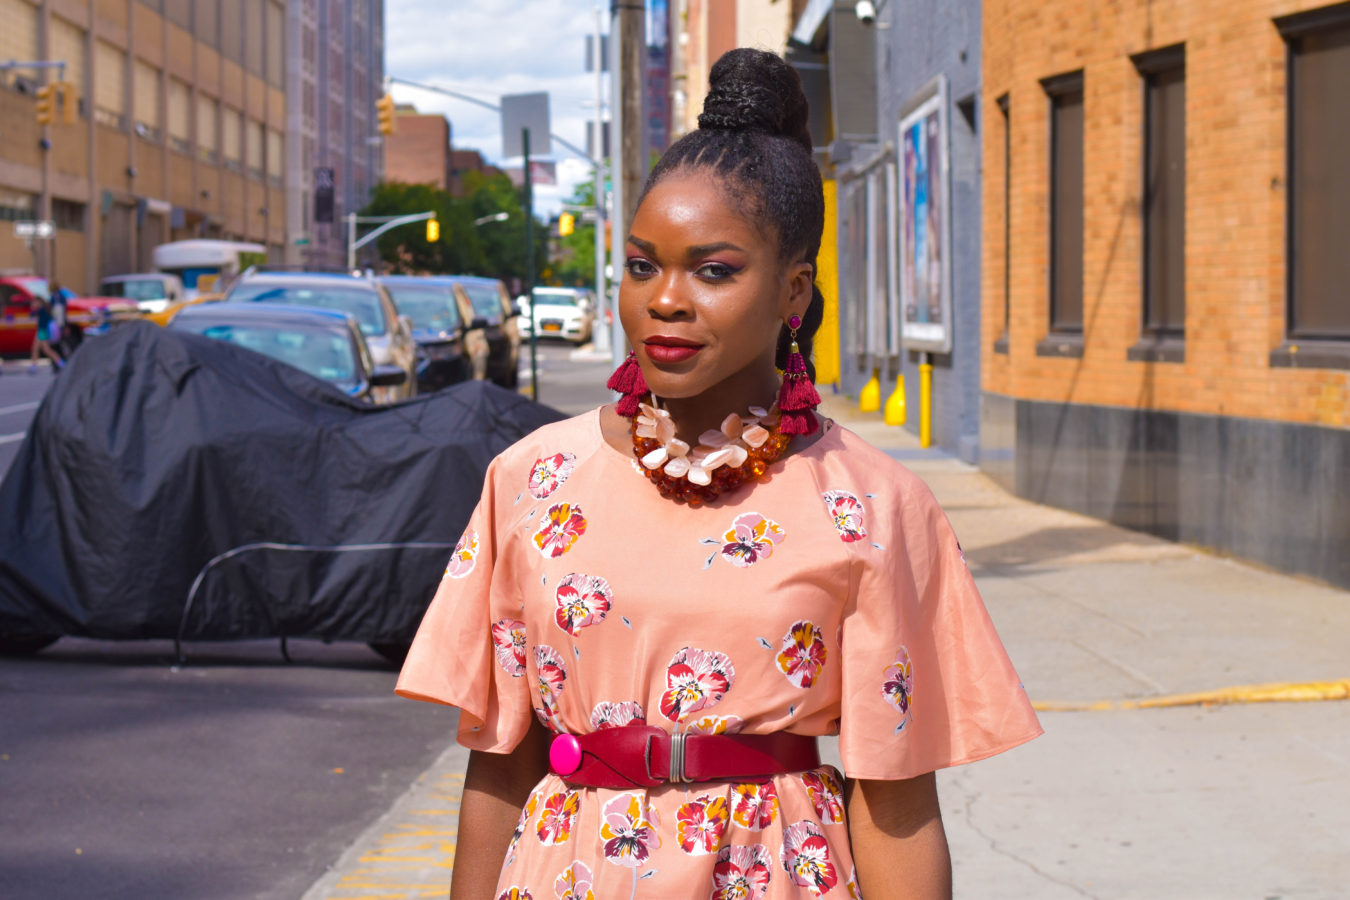 Befitting Style Peachy Floral Contrast | NYFW SS18 Day 4